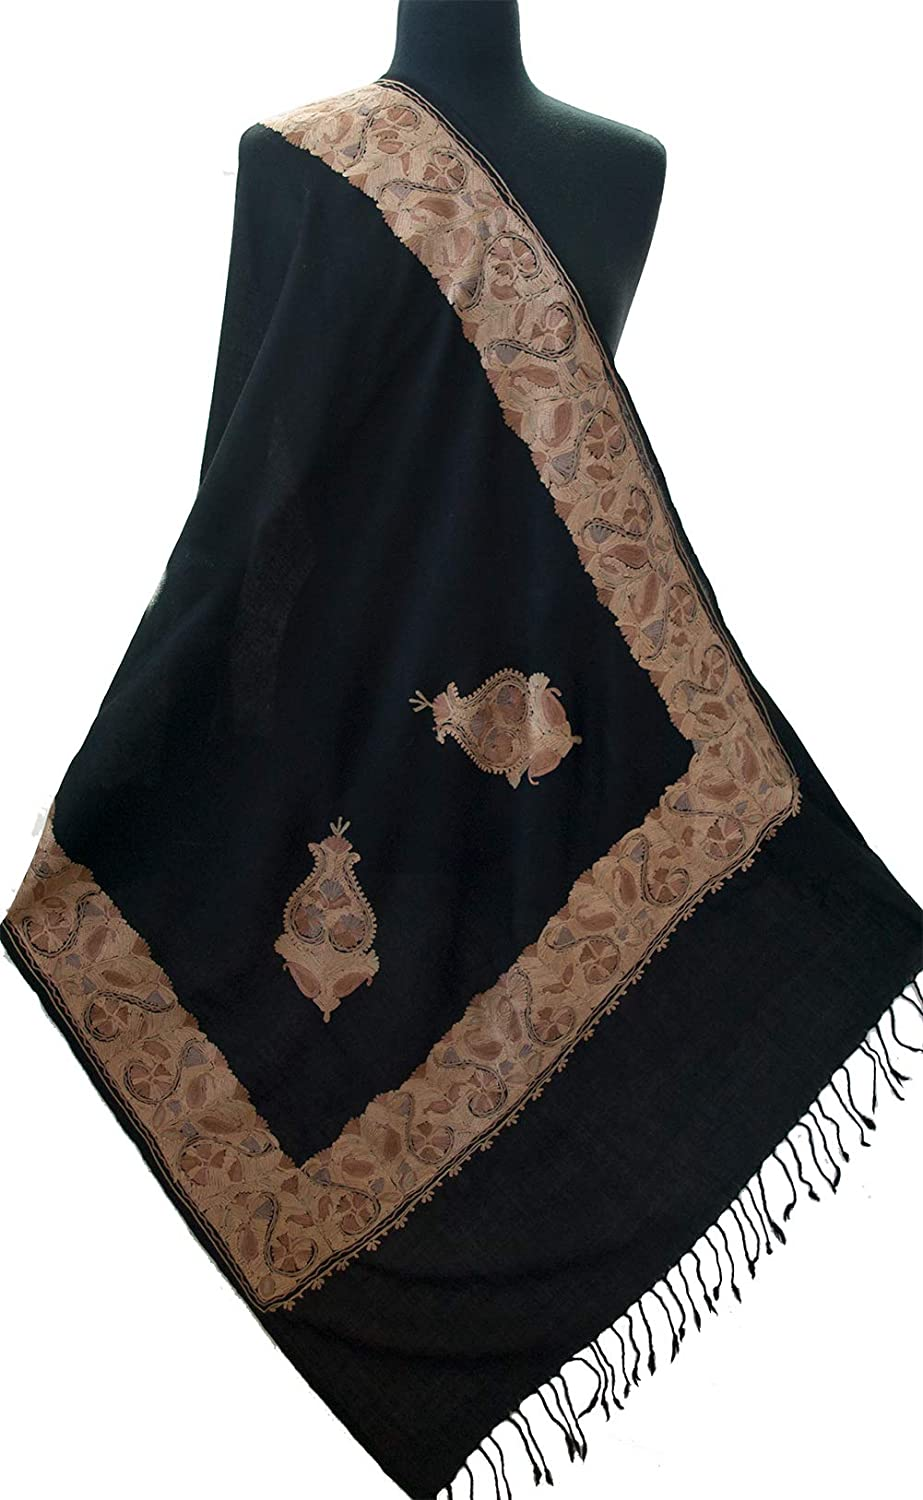 Black Crewel Embroidered Wool Shawl With golden Hues and Cream Pashmina Style